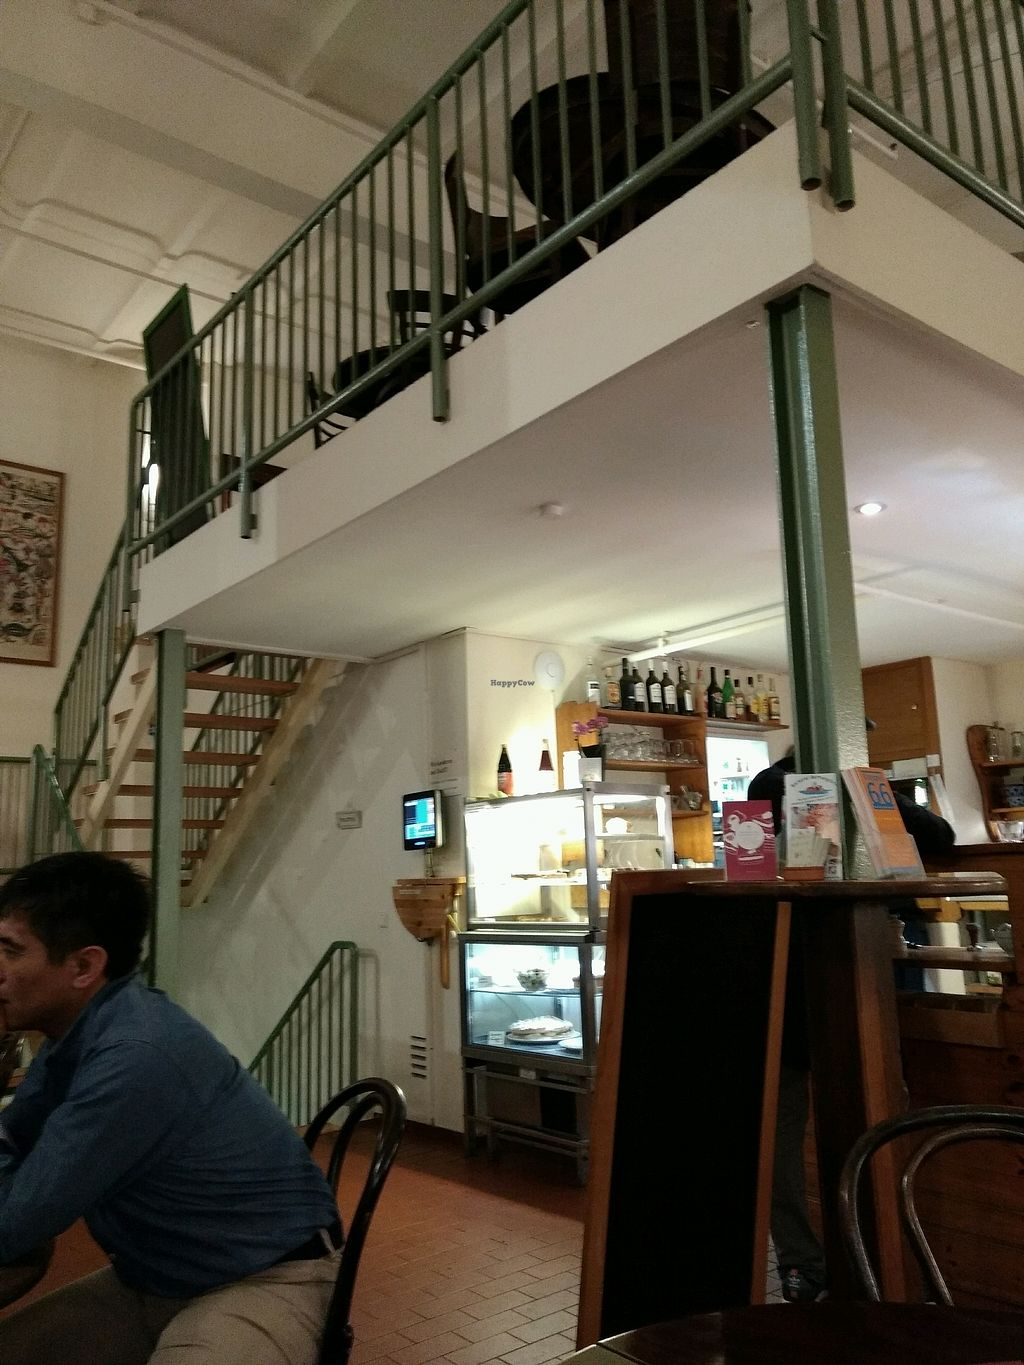 "Photo of Cafe Koppel  by <a href=""/members/profile/craigmc"">craigmc</a> <br/>nice <br/> March 12, 2018  - <a href='/contact/abuse/image/16259/369703'>Report</a>"